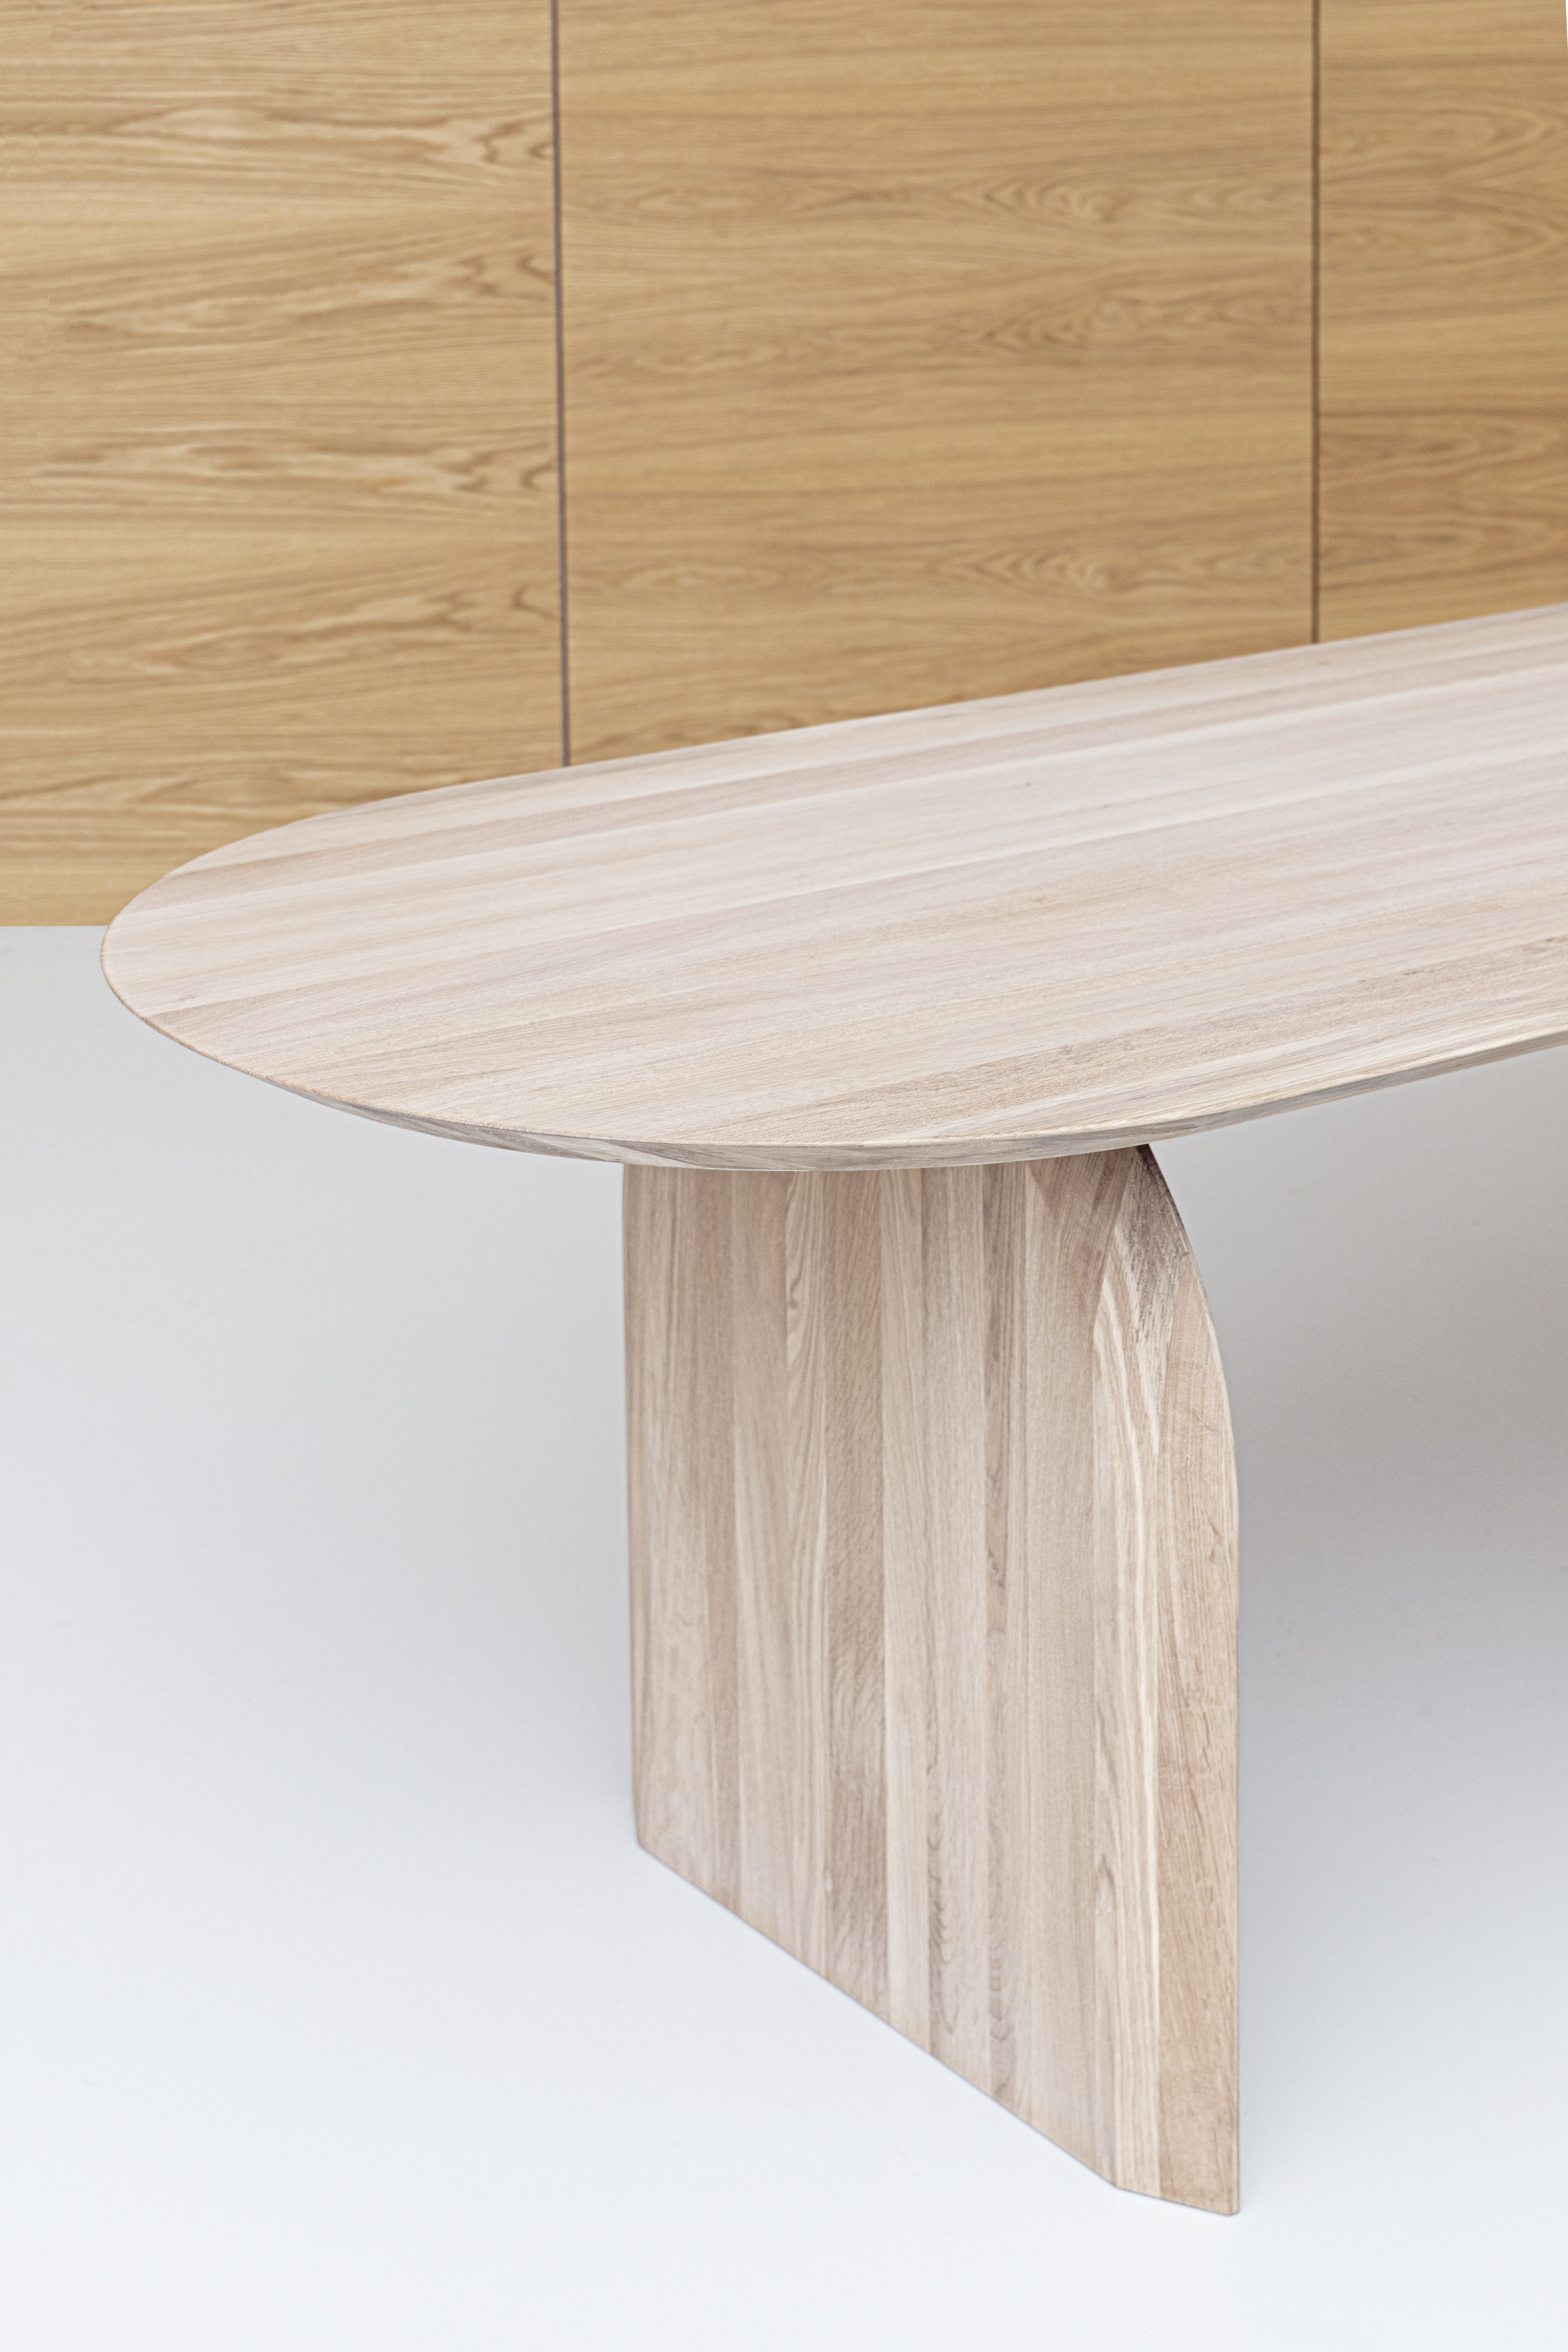 We Re Introducing A Beautiful New Dining Table The Slot Is A